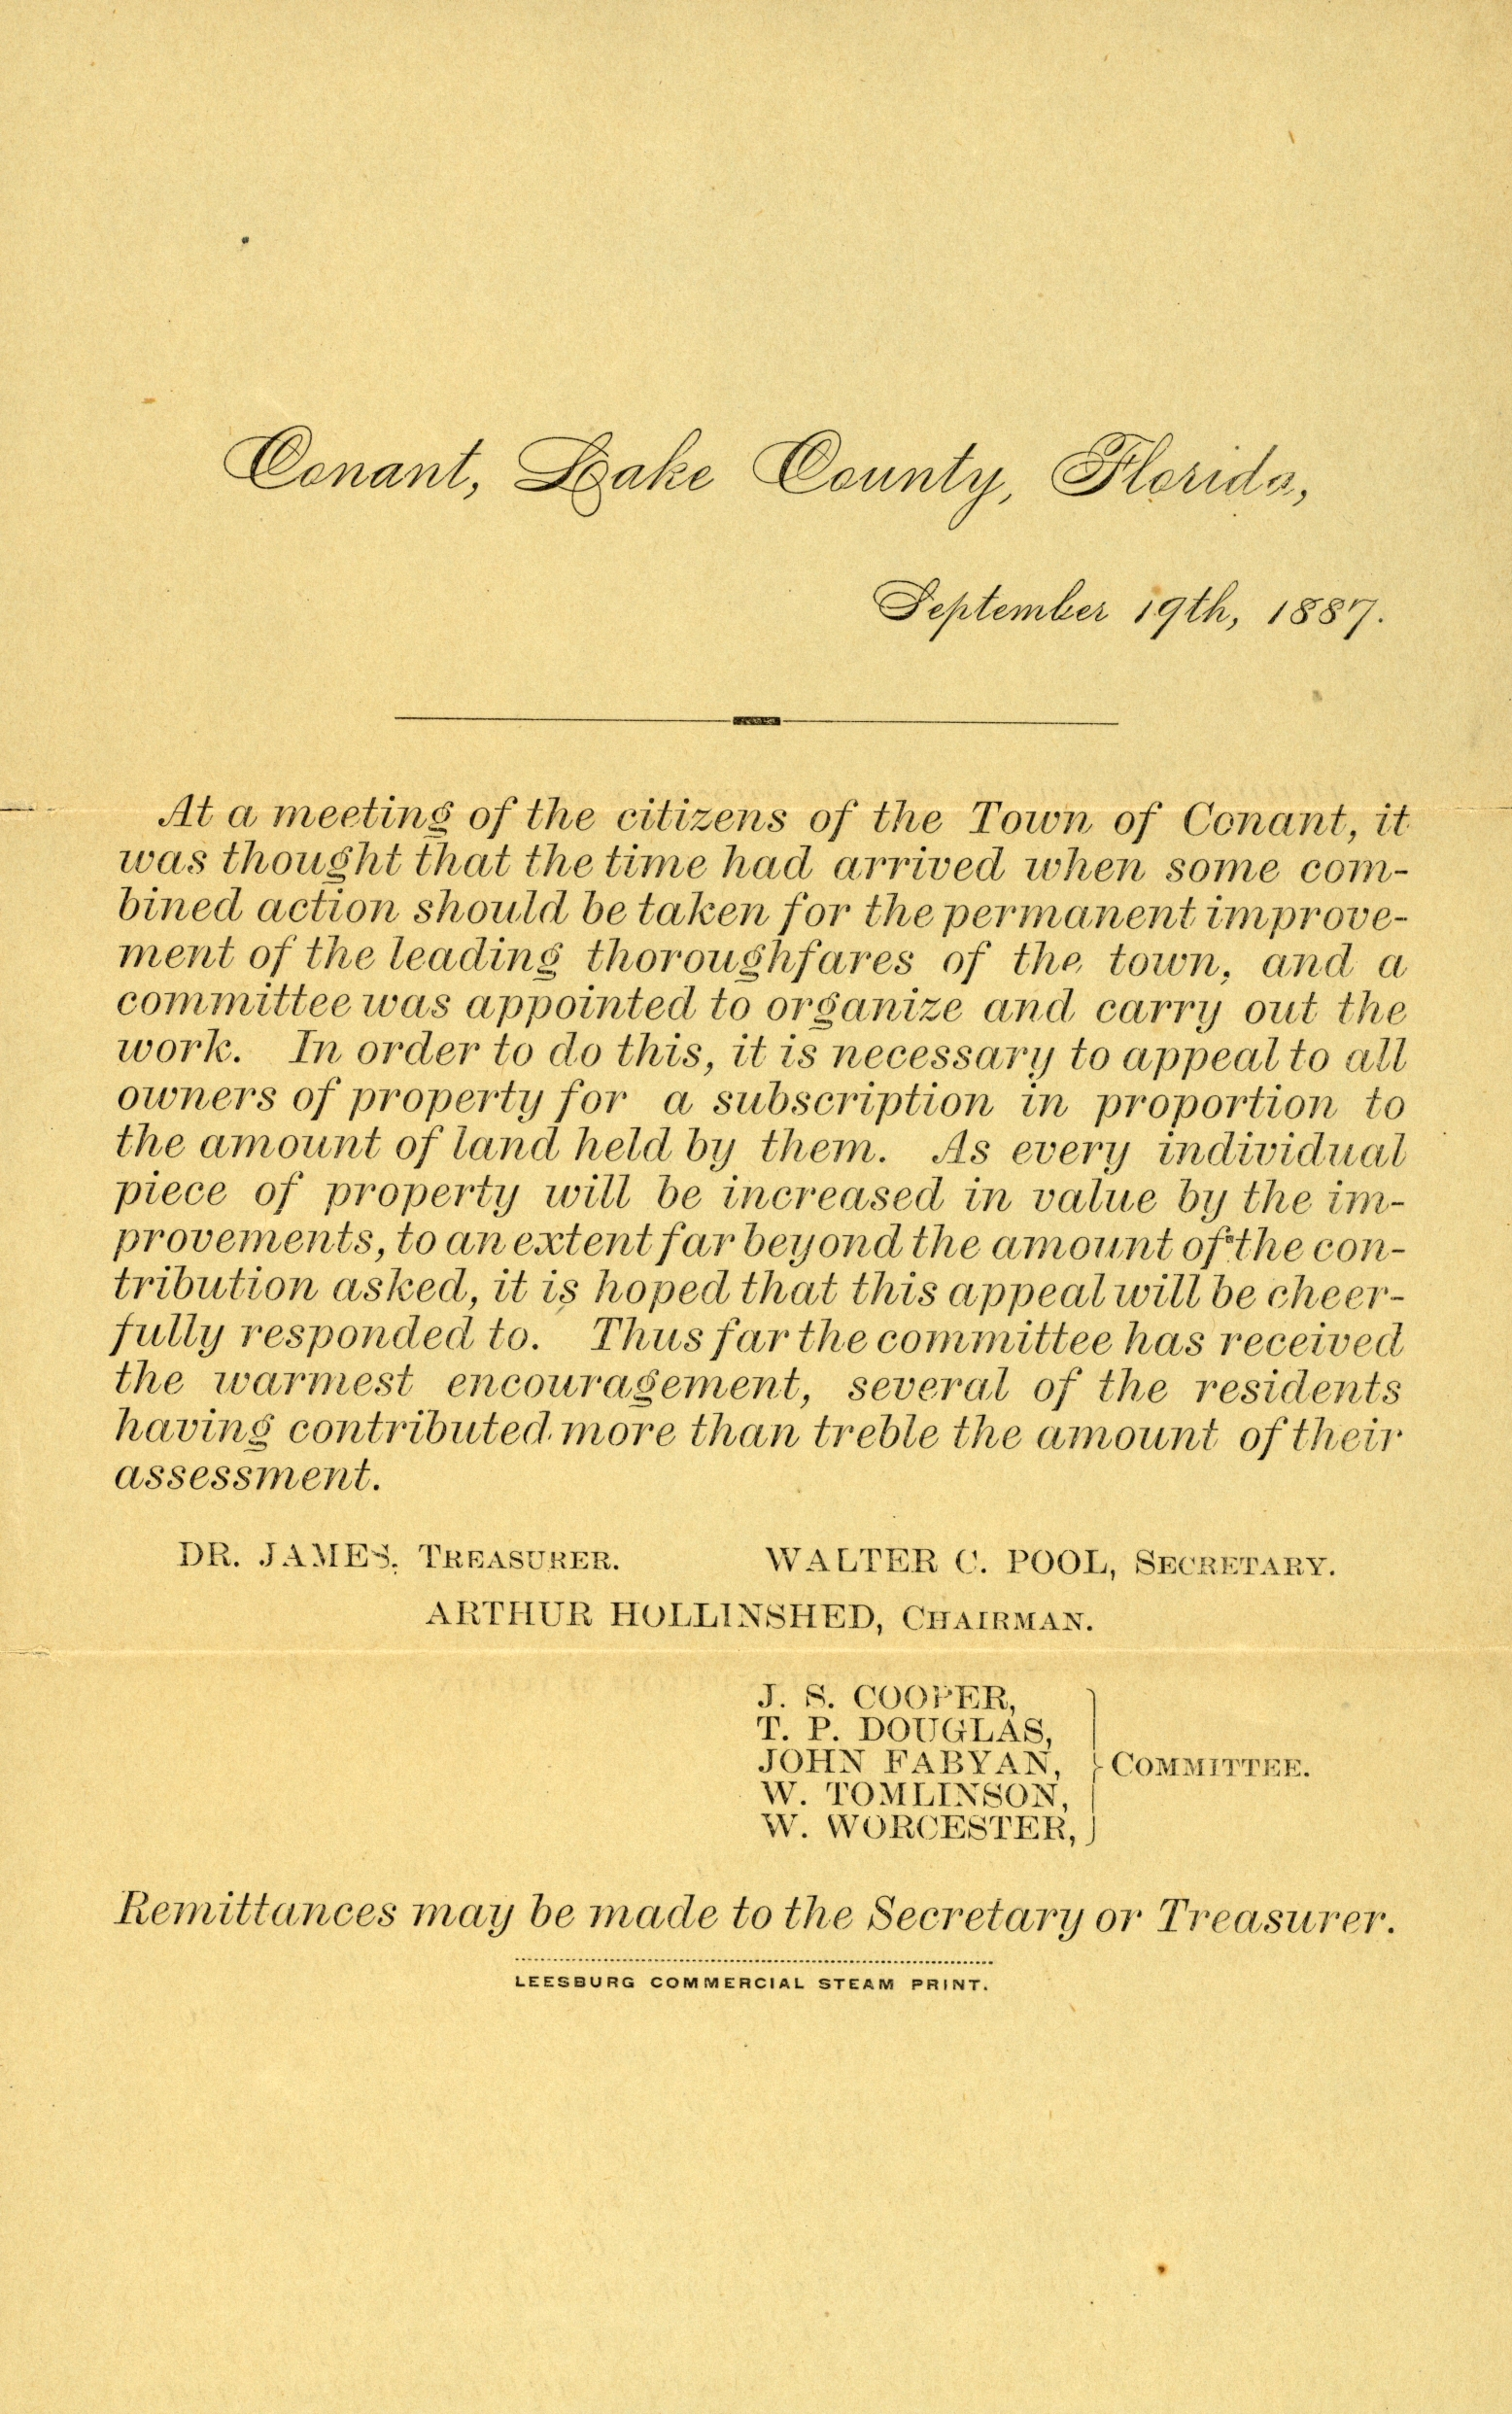 Circular letter to citizens of the town of Conant, Florida,1887.